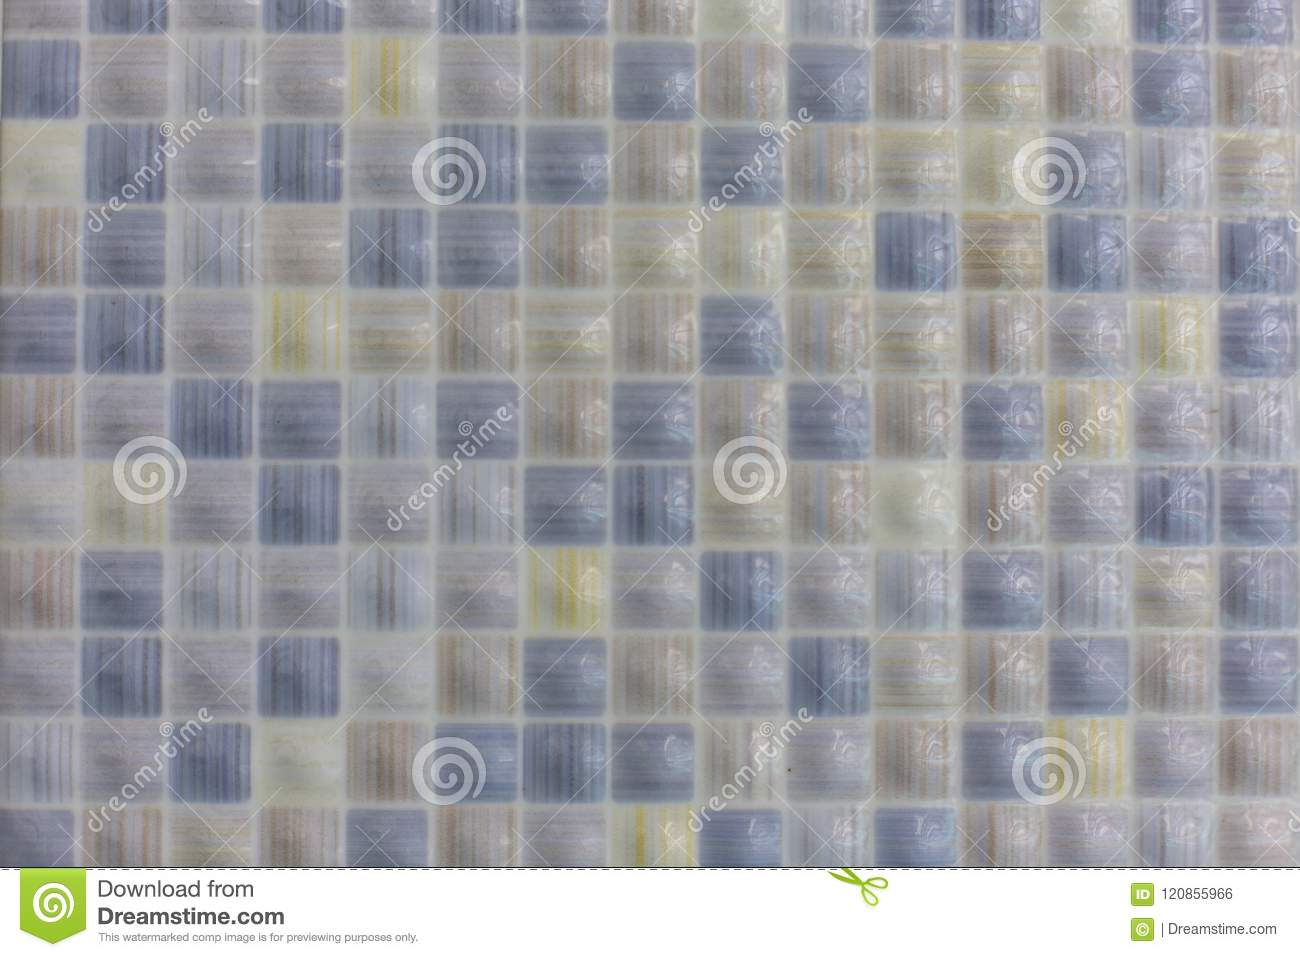 Ceramic tiles in the pool or bathroom pattern texture background